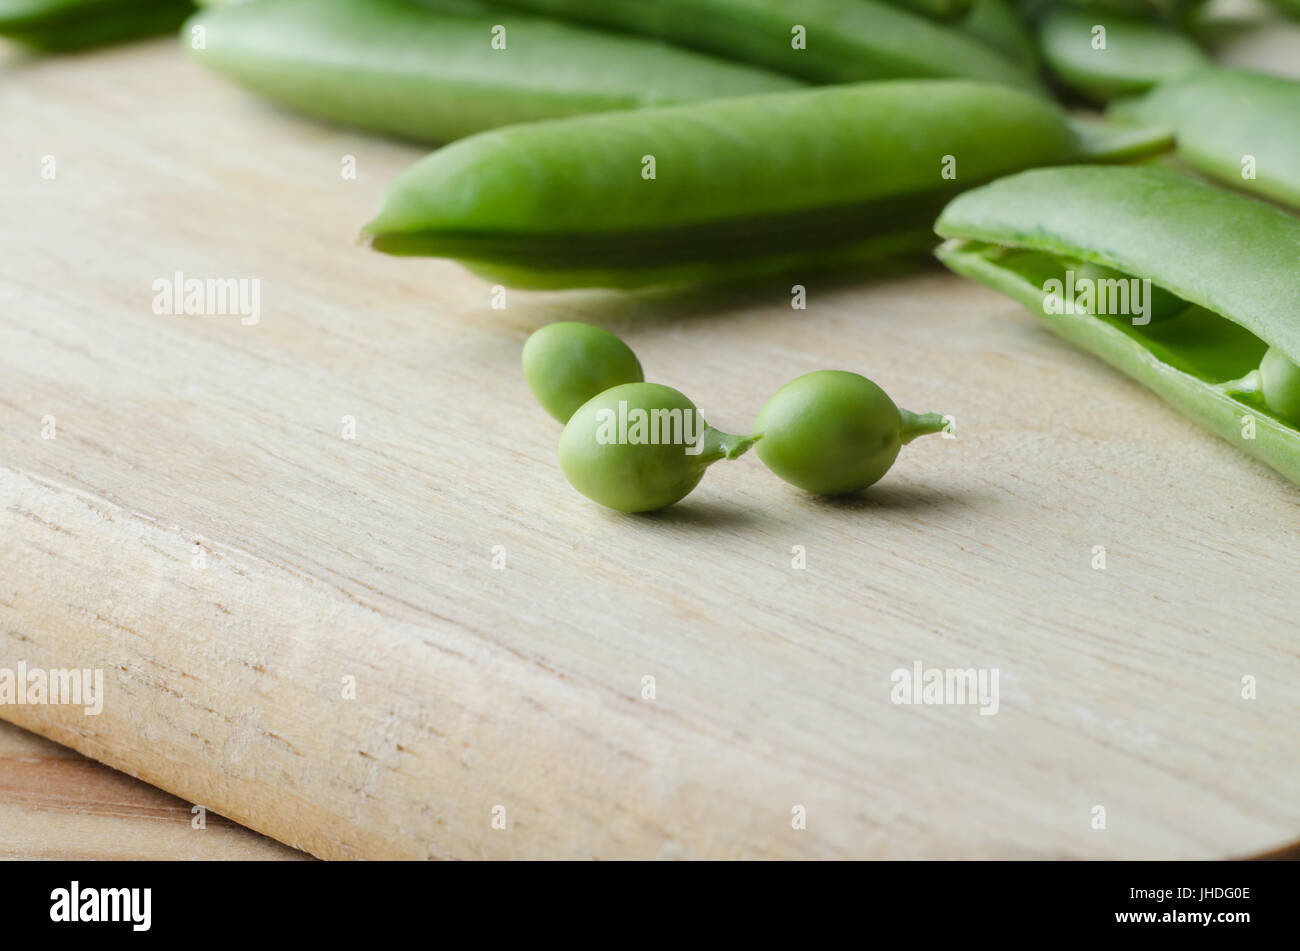 Food preparation scene. Three freshly picked peas with stalks on a wooden chopping board with opened and closed - Stock Image